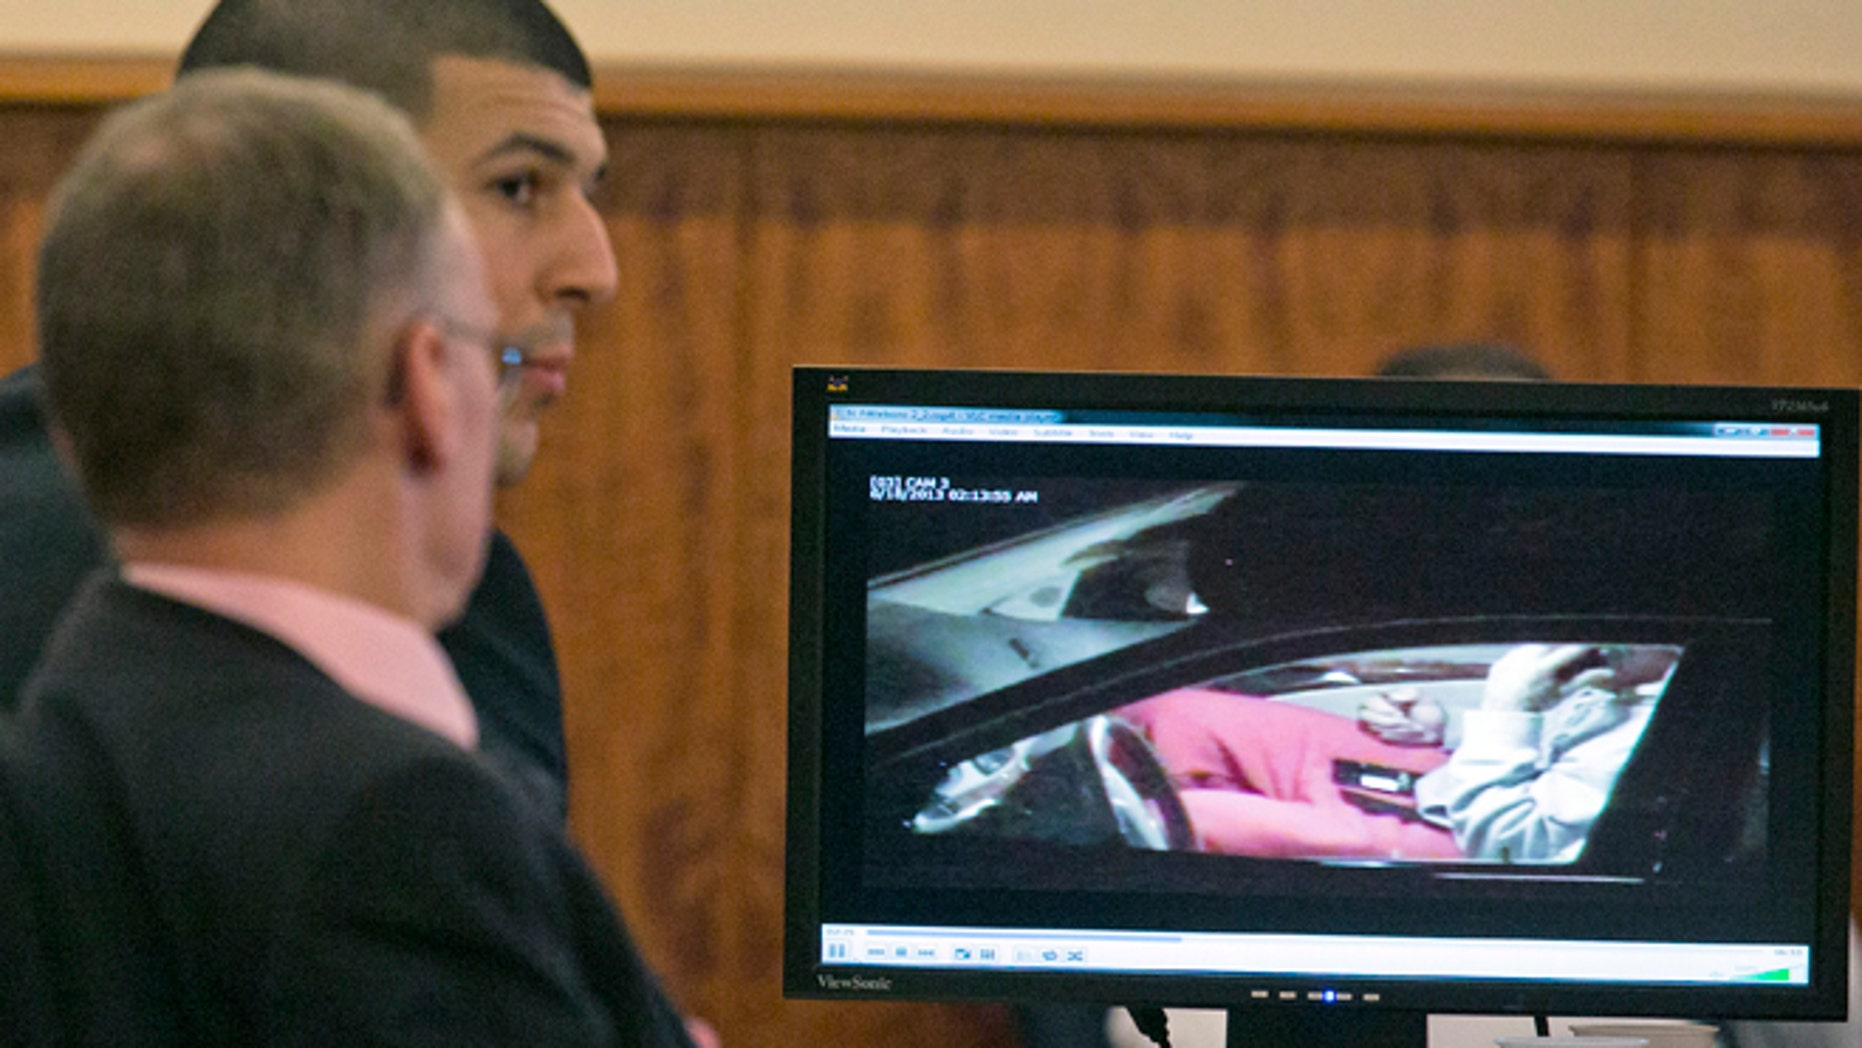 Aaron Hernandez, rear, and his attorney Charles Rankin watch surveillance video of Hernandez handling cell phones during his murder trial at the Bristol County Superior Court in Fall River, Mass. on Tuesday, Feb. 17, 2015. Hernandez is accused in the June 17, 2013, killing of Odin Lloyd, who was dating his fiancée's sister. (AP Photo/Dominick Reuter, Pool)